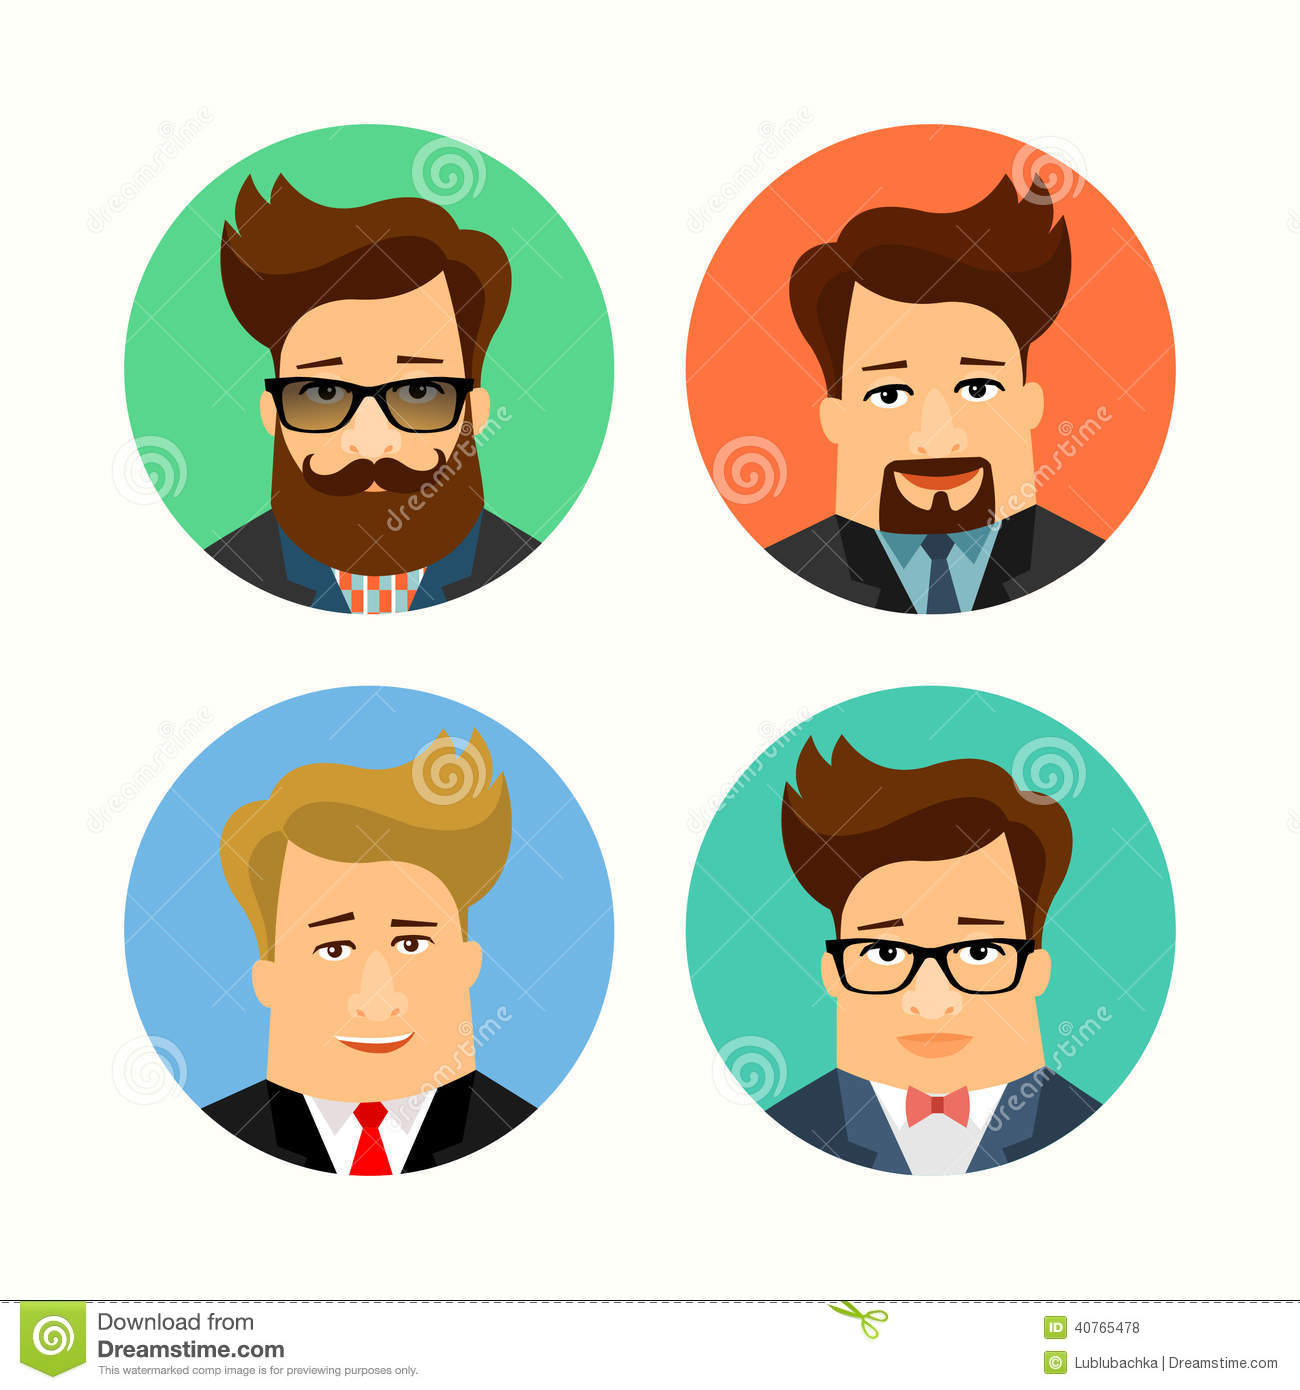 Cartoon Character Design Vector : Business and casual male handsome cartoon characters flat